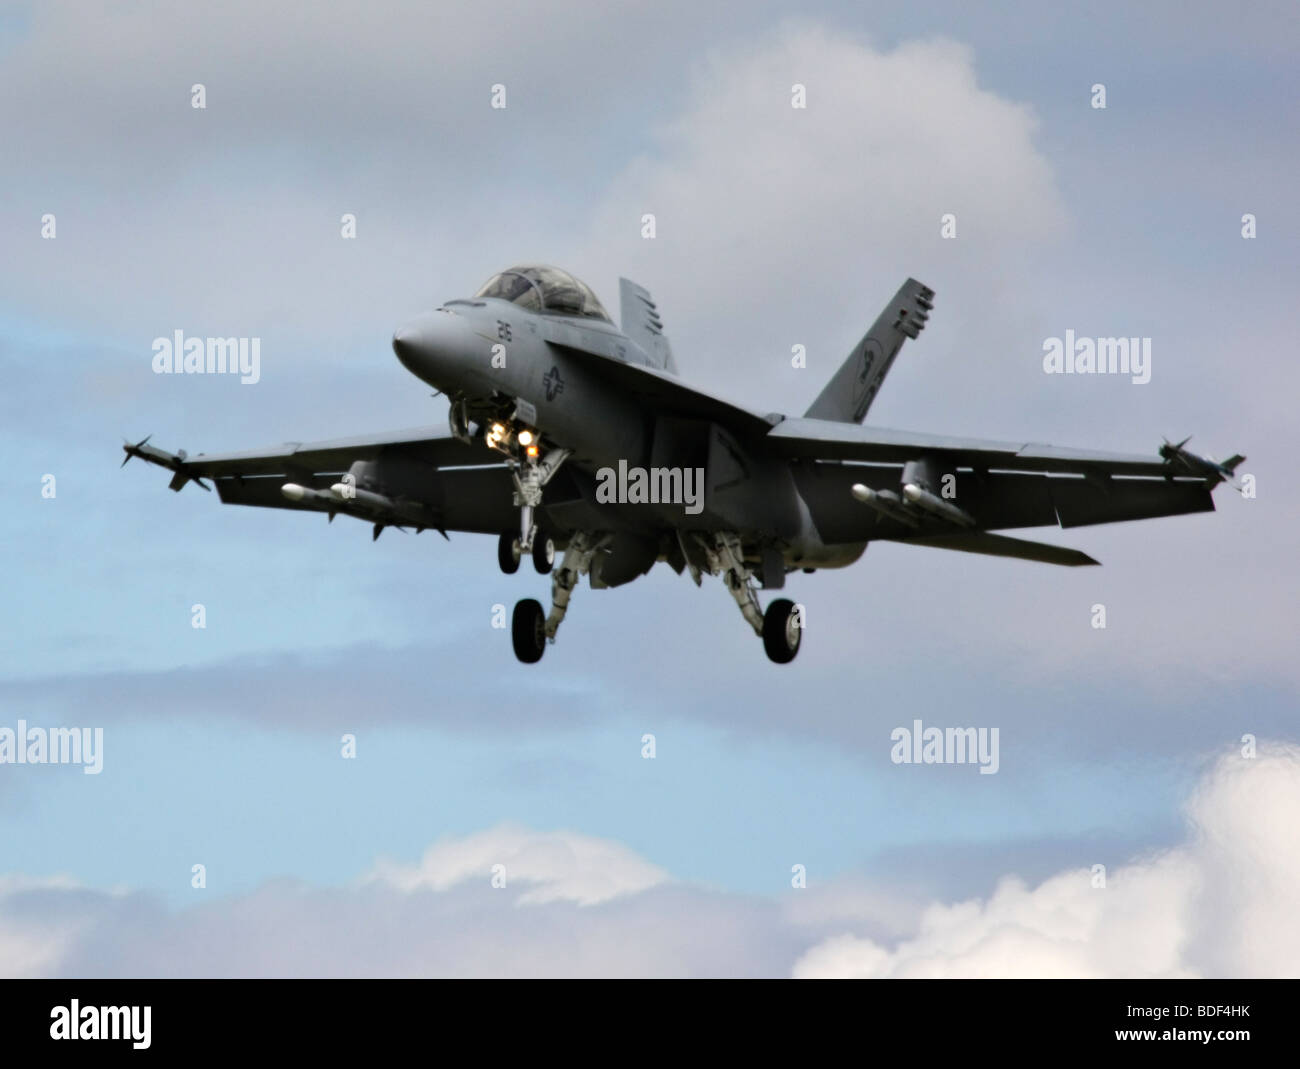 American Boeing FA-18 Super Hornet Jet landing with dynamic cloud background at the Farnborough Air Show in 2008 Stock Photo